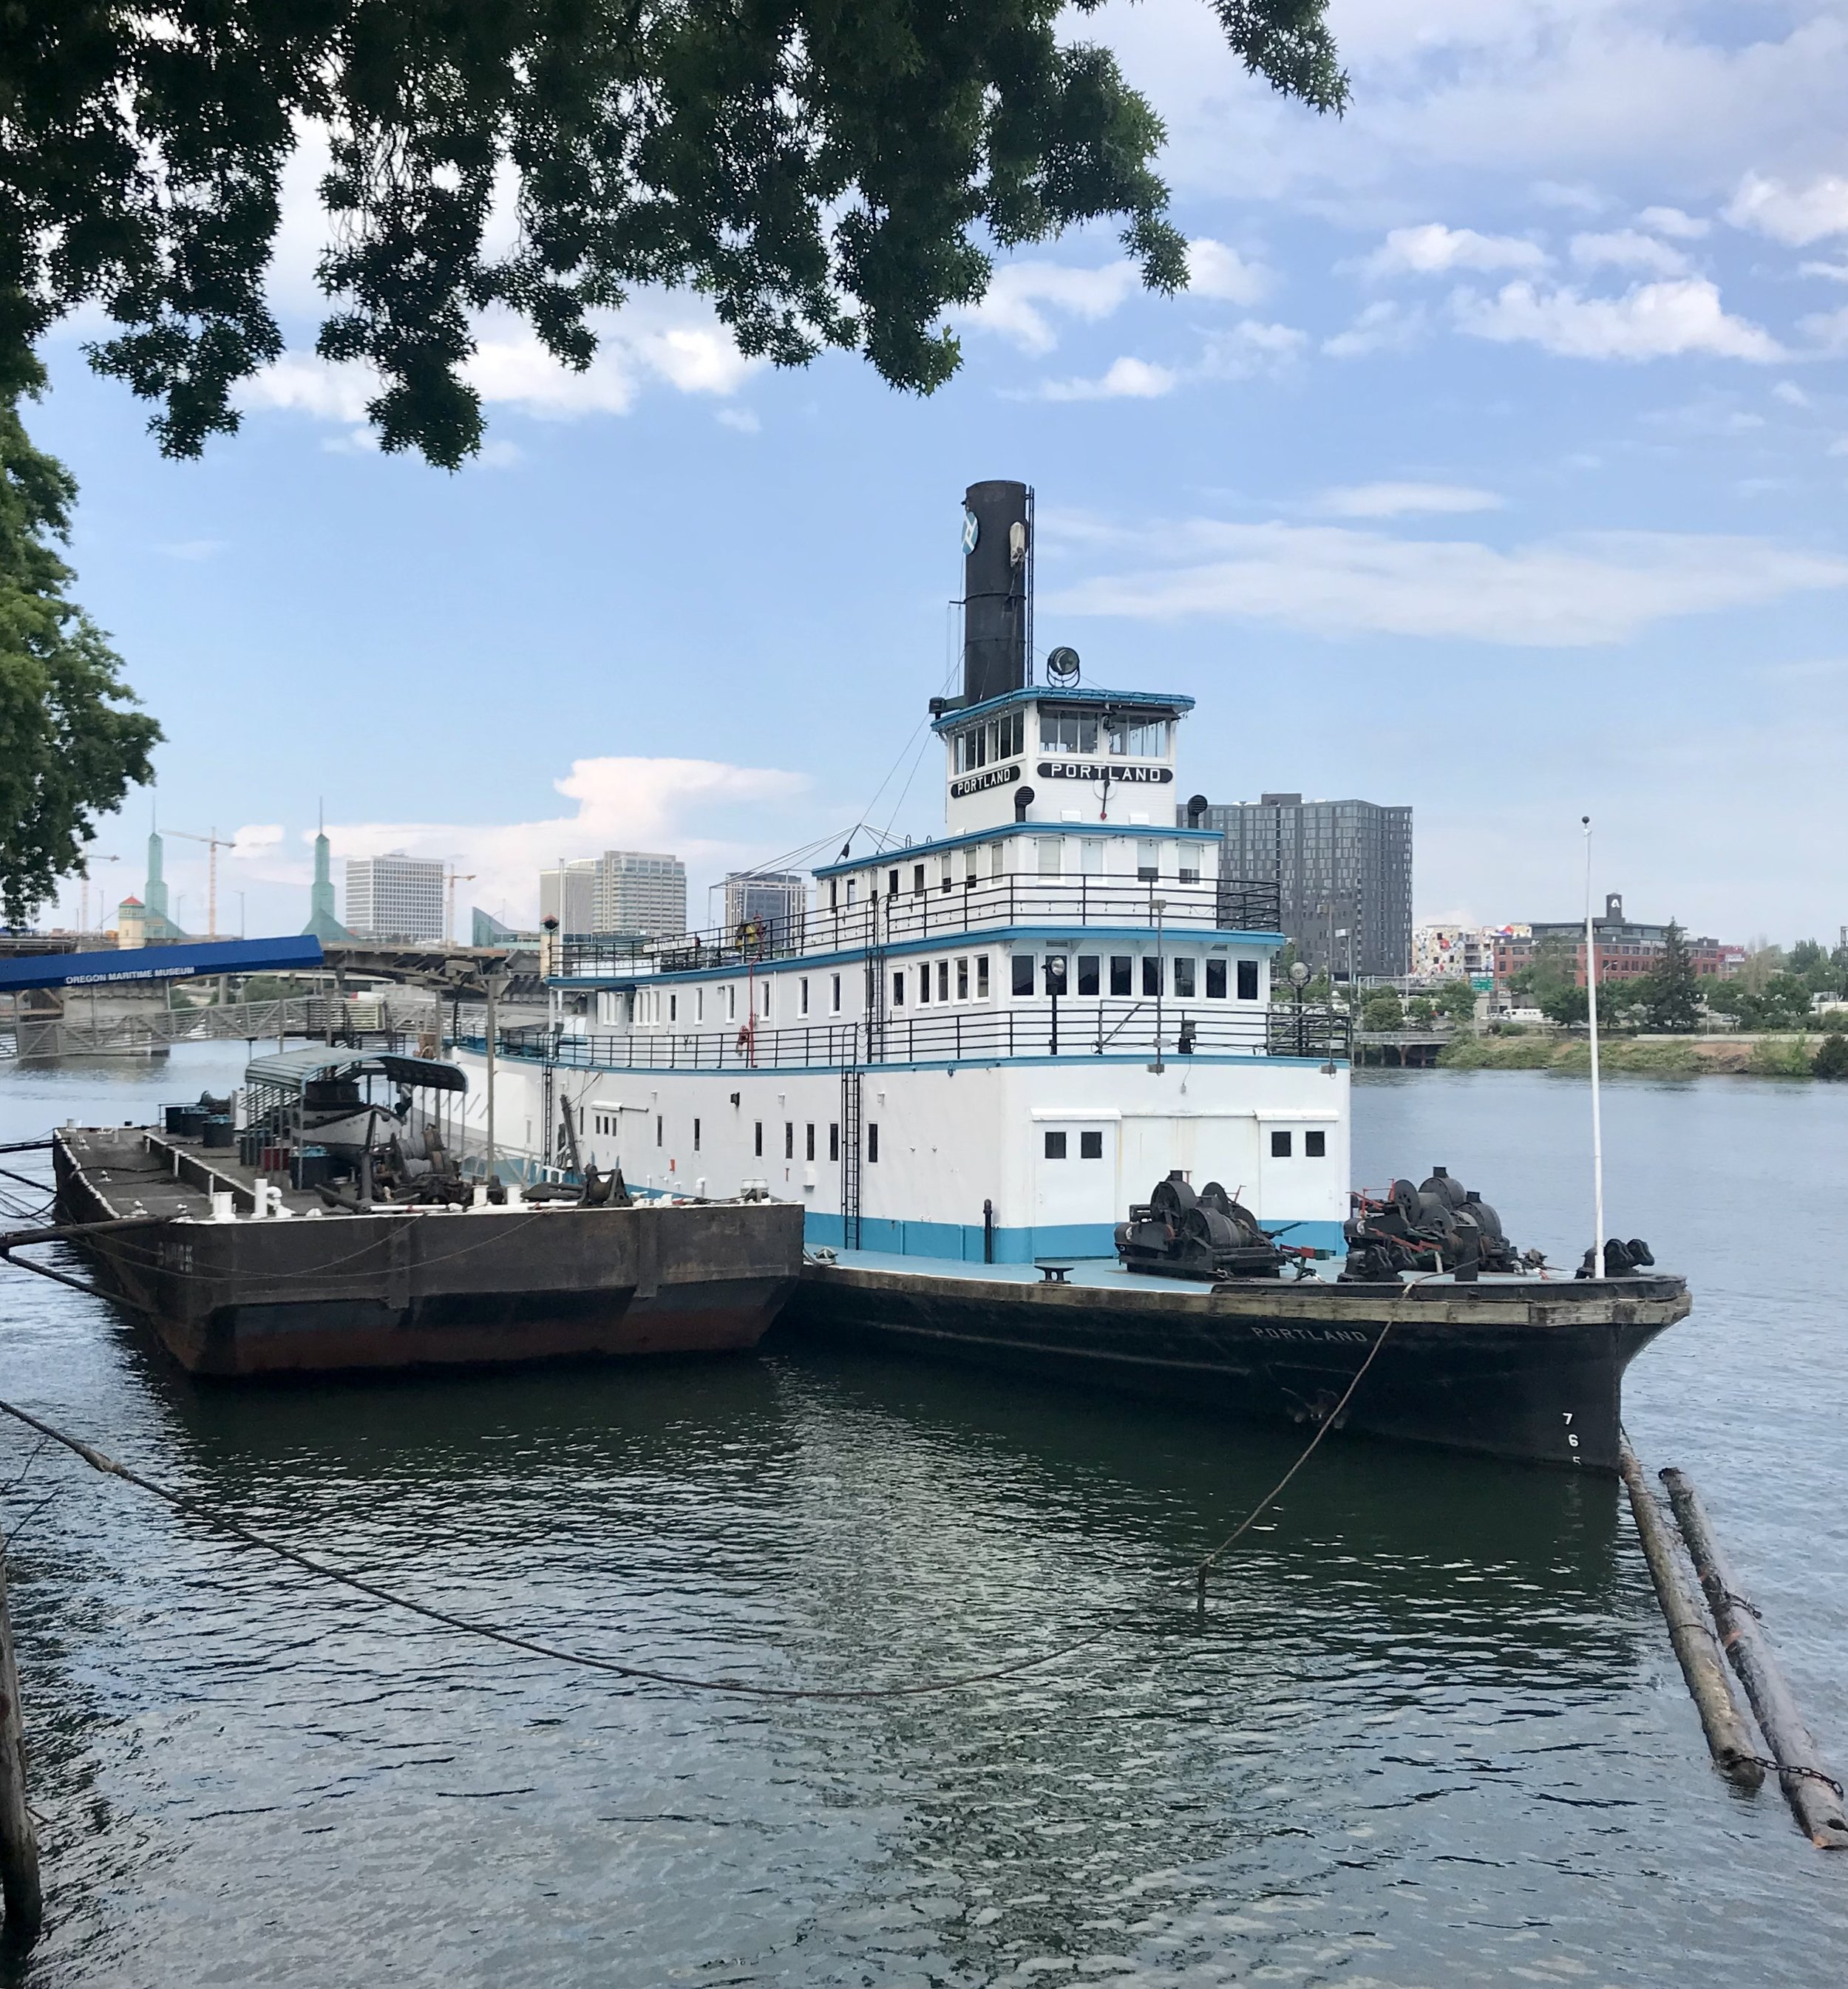 Old boat on the Willamette river